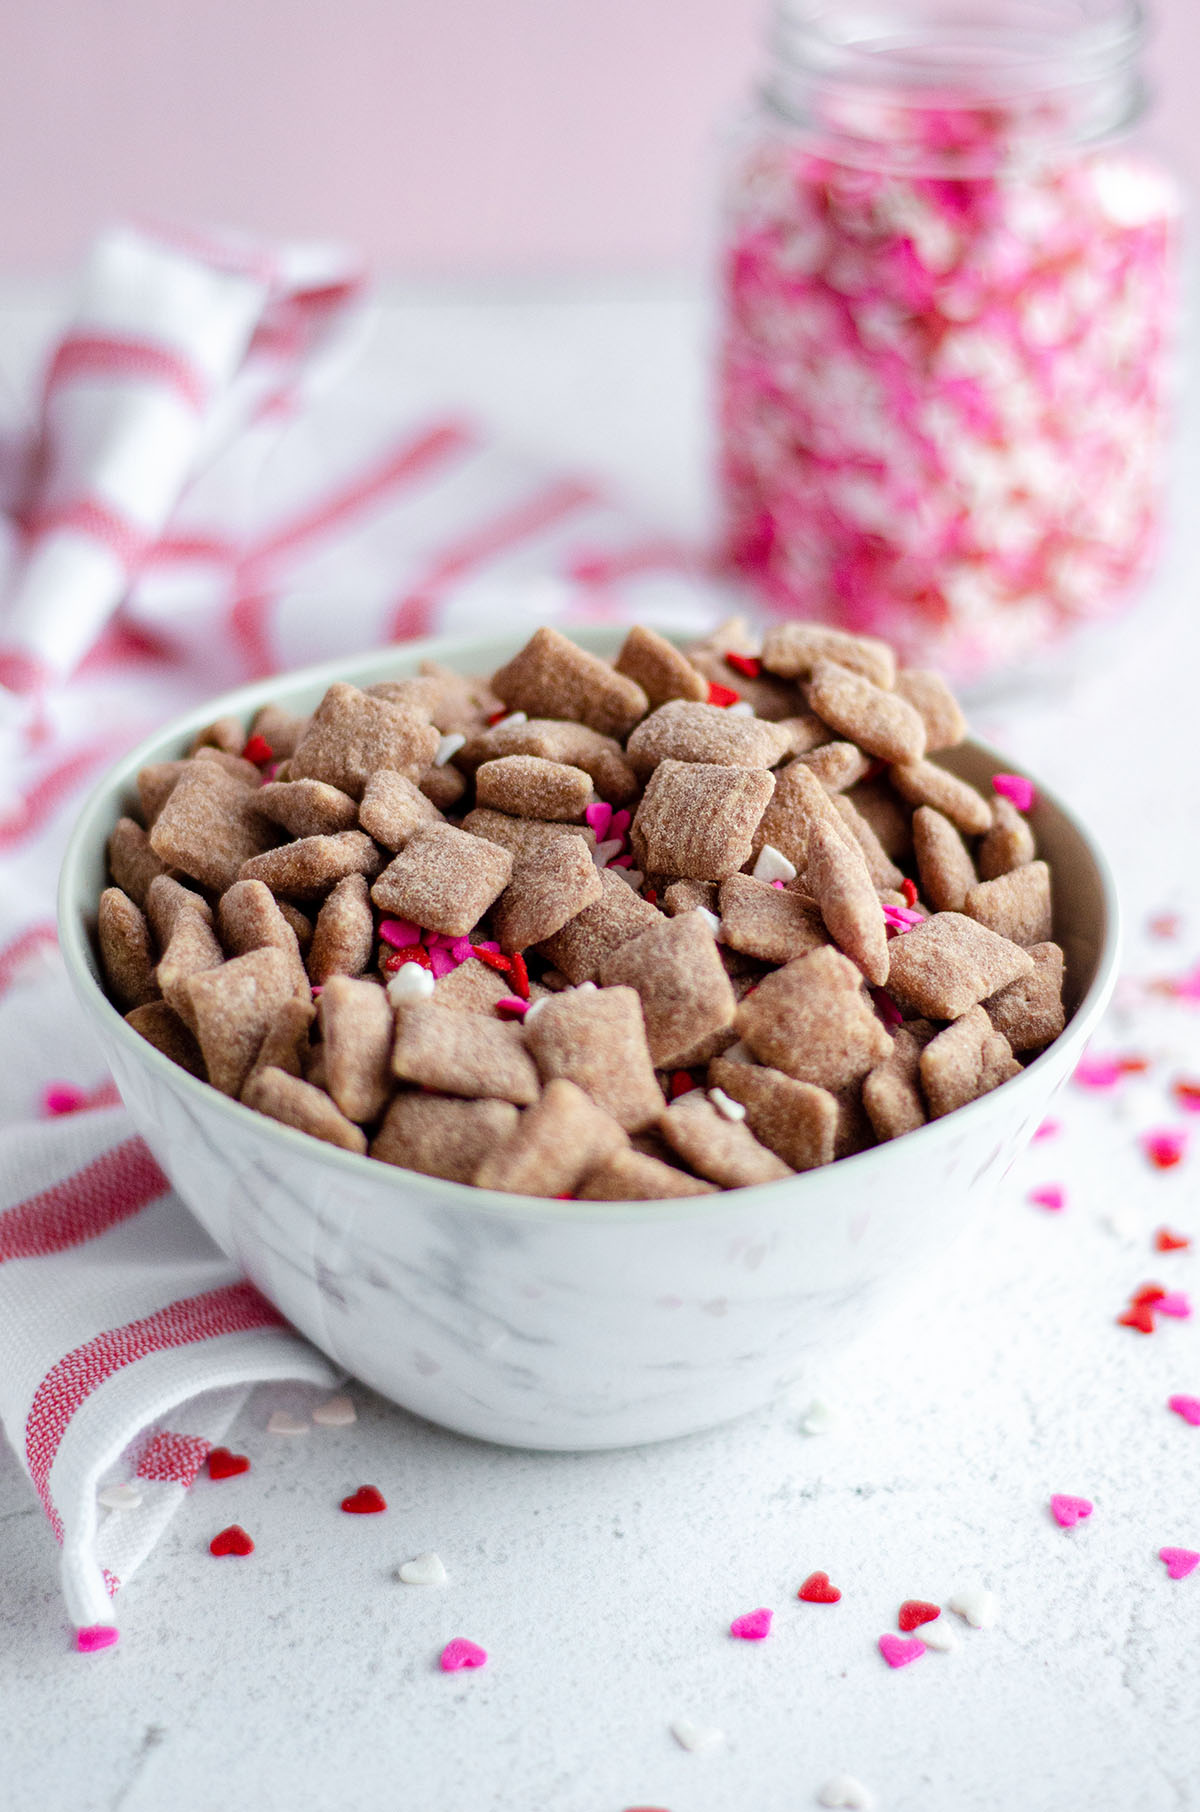 red velvet puppy chow in a white bowl